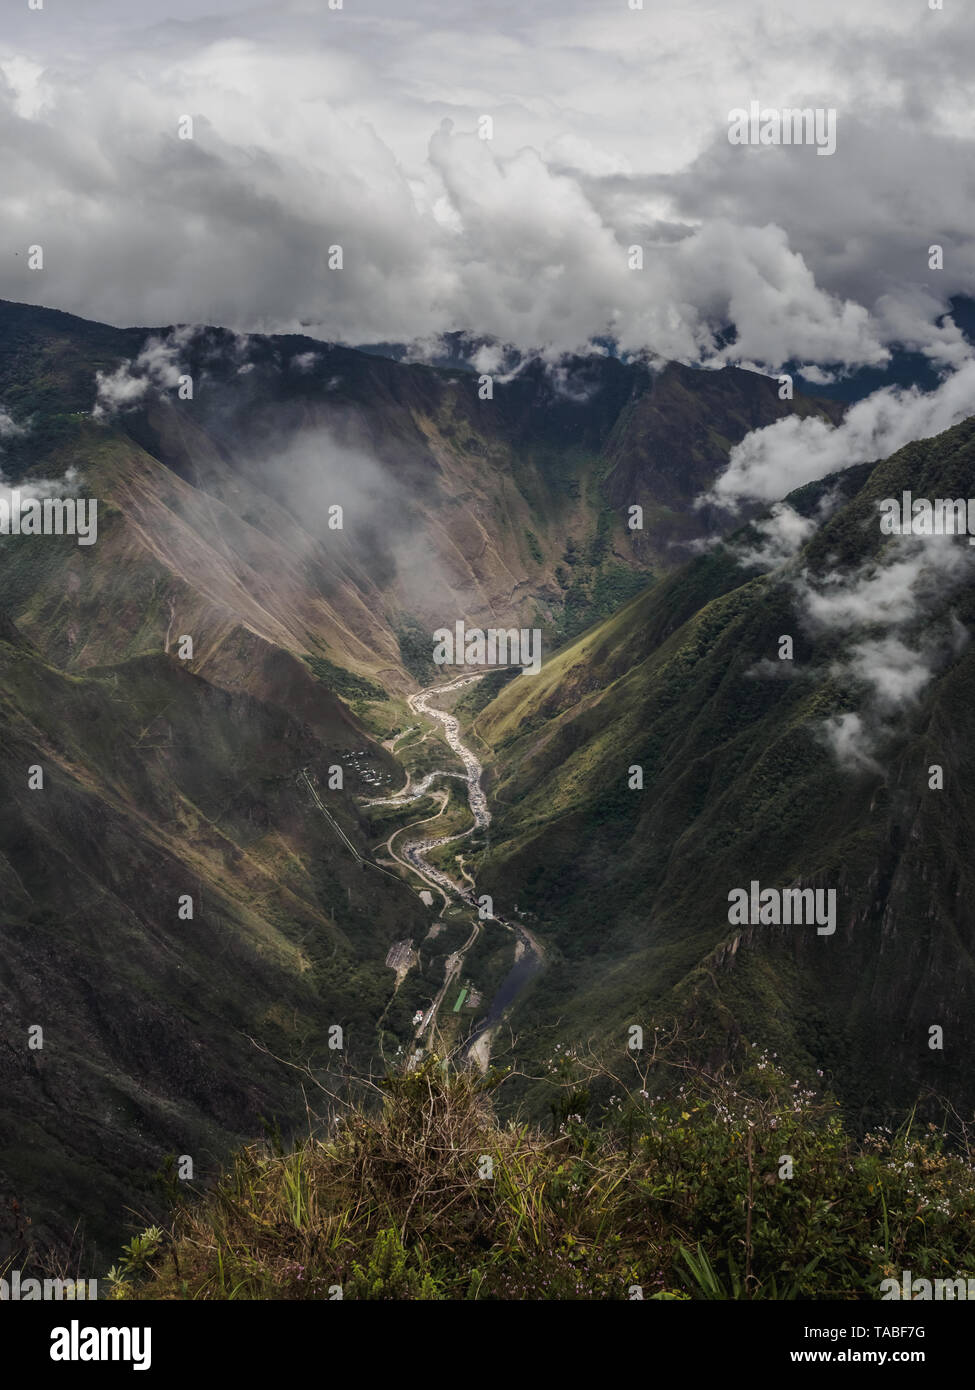 Valley of the Vilcanota river from the top of the Machu Picchu mountain in Peru. - Stock Image